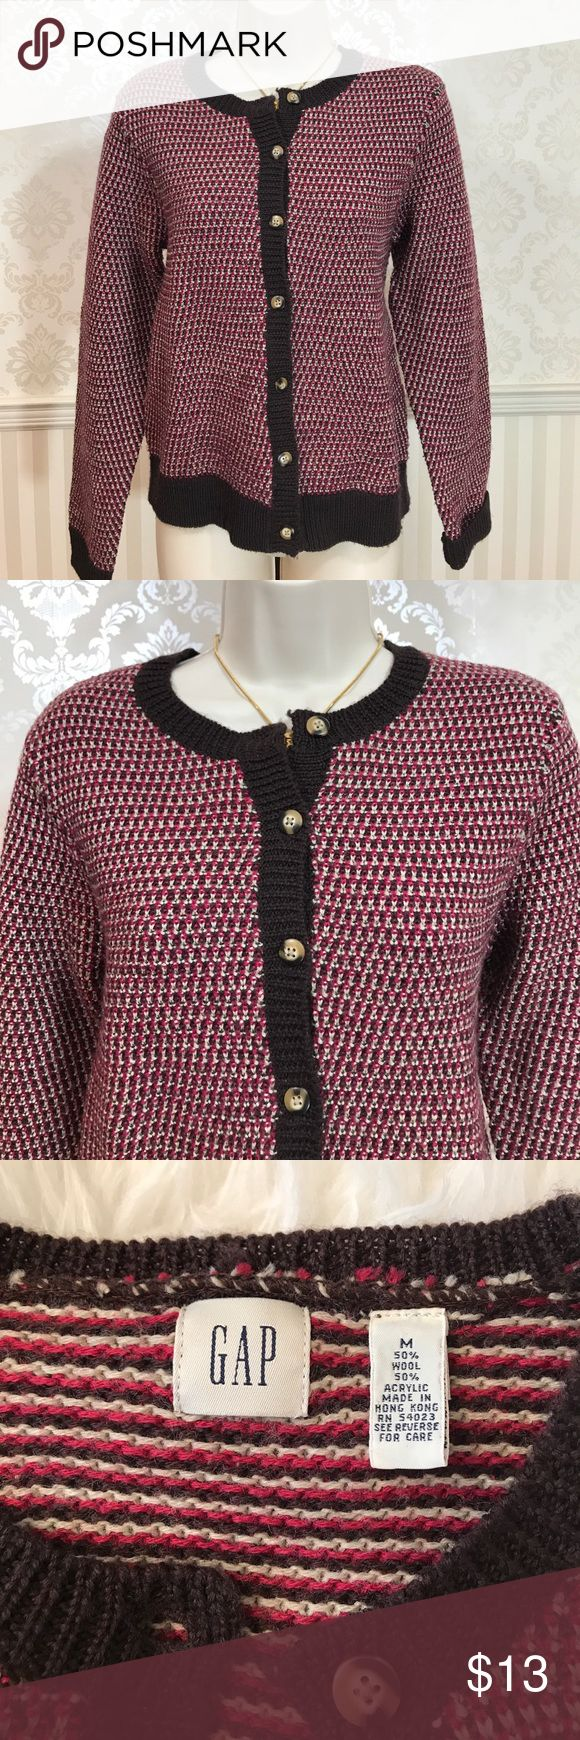 """GAP Wool-Blend Red & Brown Cardigan GAP wool-blend red and brown woven cardigan in excellent condition. Would be terrific for fall and winter! Tortoiseshell buttons. Bust is about 36,"""" length is approximately 22."""" 50% wool, 50% acrylic. Size M. GAP Sweaters Cardigans"""